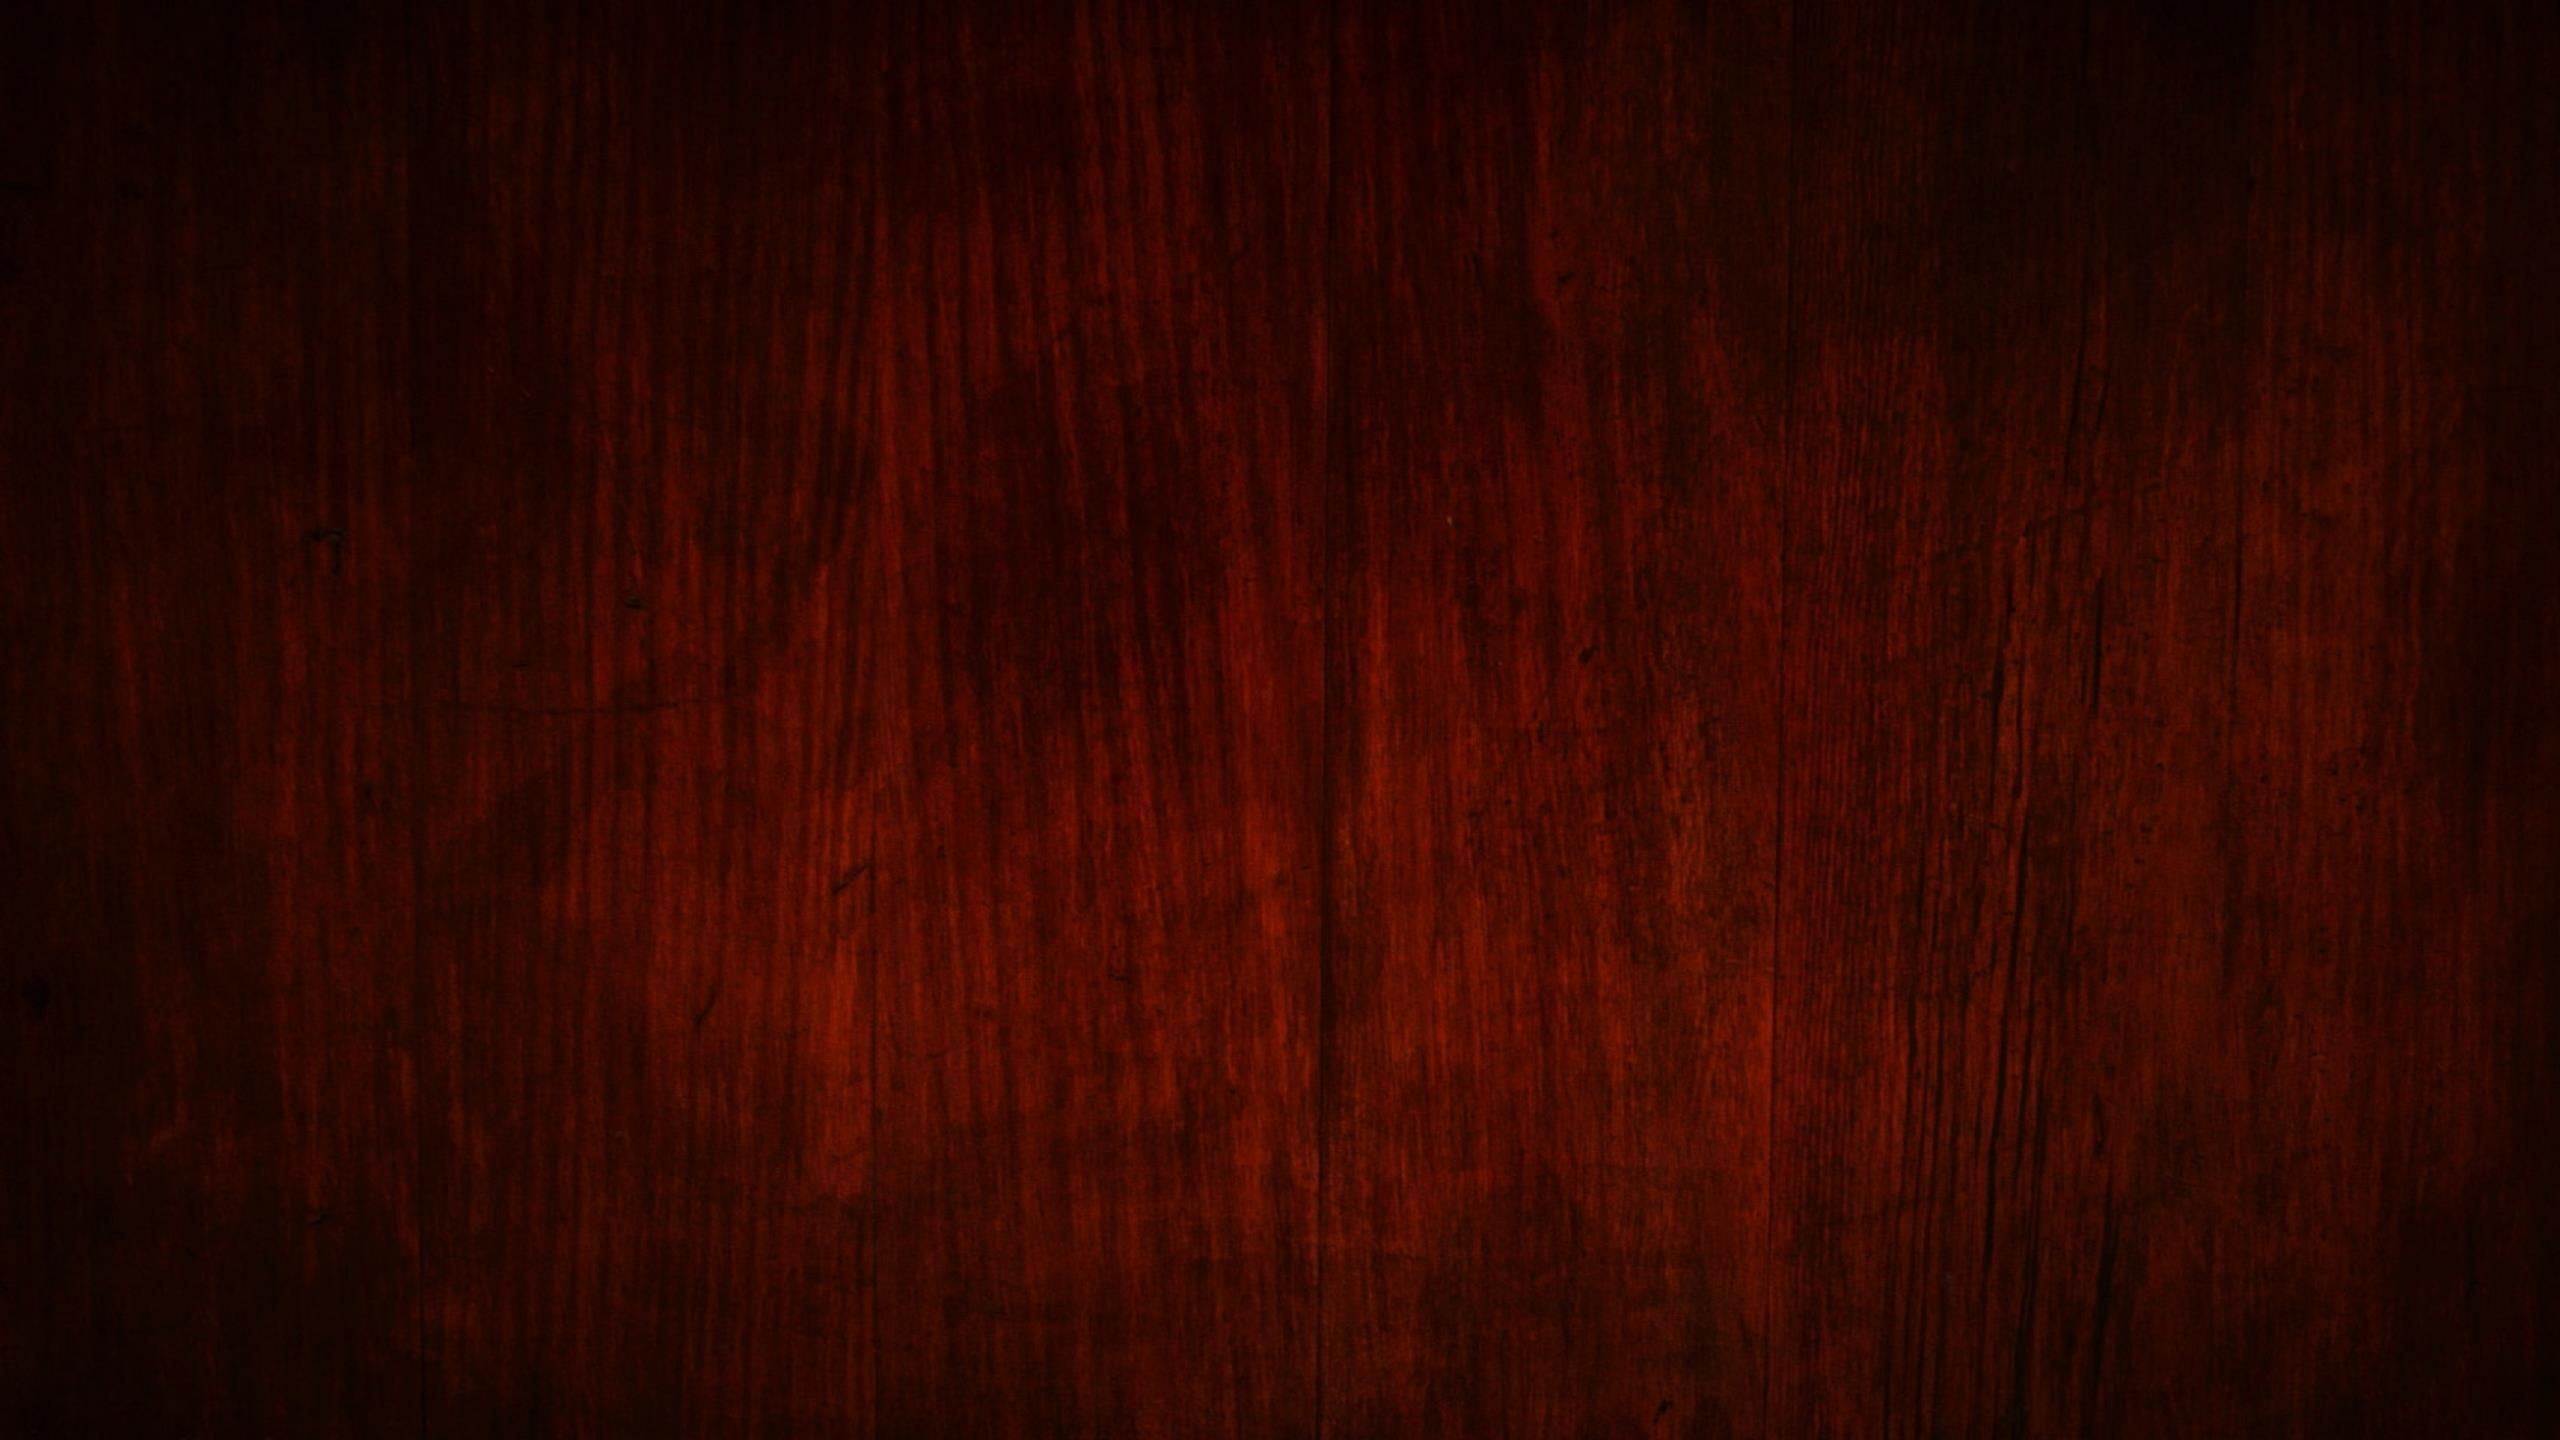 Polished Wood Texture Wallpaper Reclaimed Wood Wallpaper Texture Wood Texture